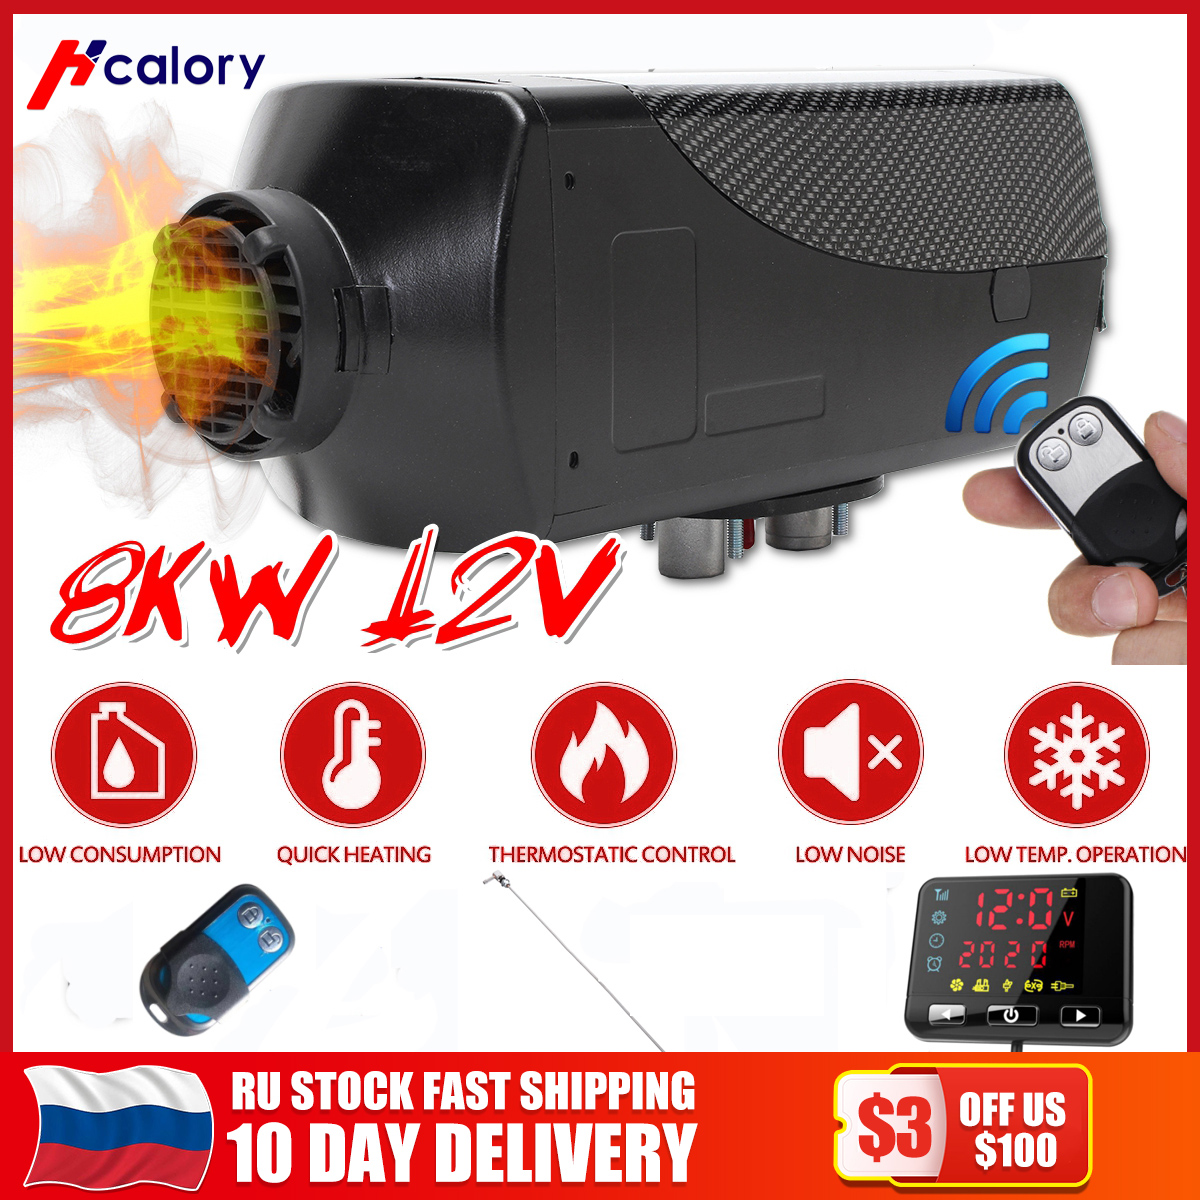 12V 8000W Car Heater Diesel Air Heater LCD Thermostat Remote Control FOR Car Boat RV Motorhome Trailer Trucks  Simple version